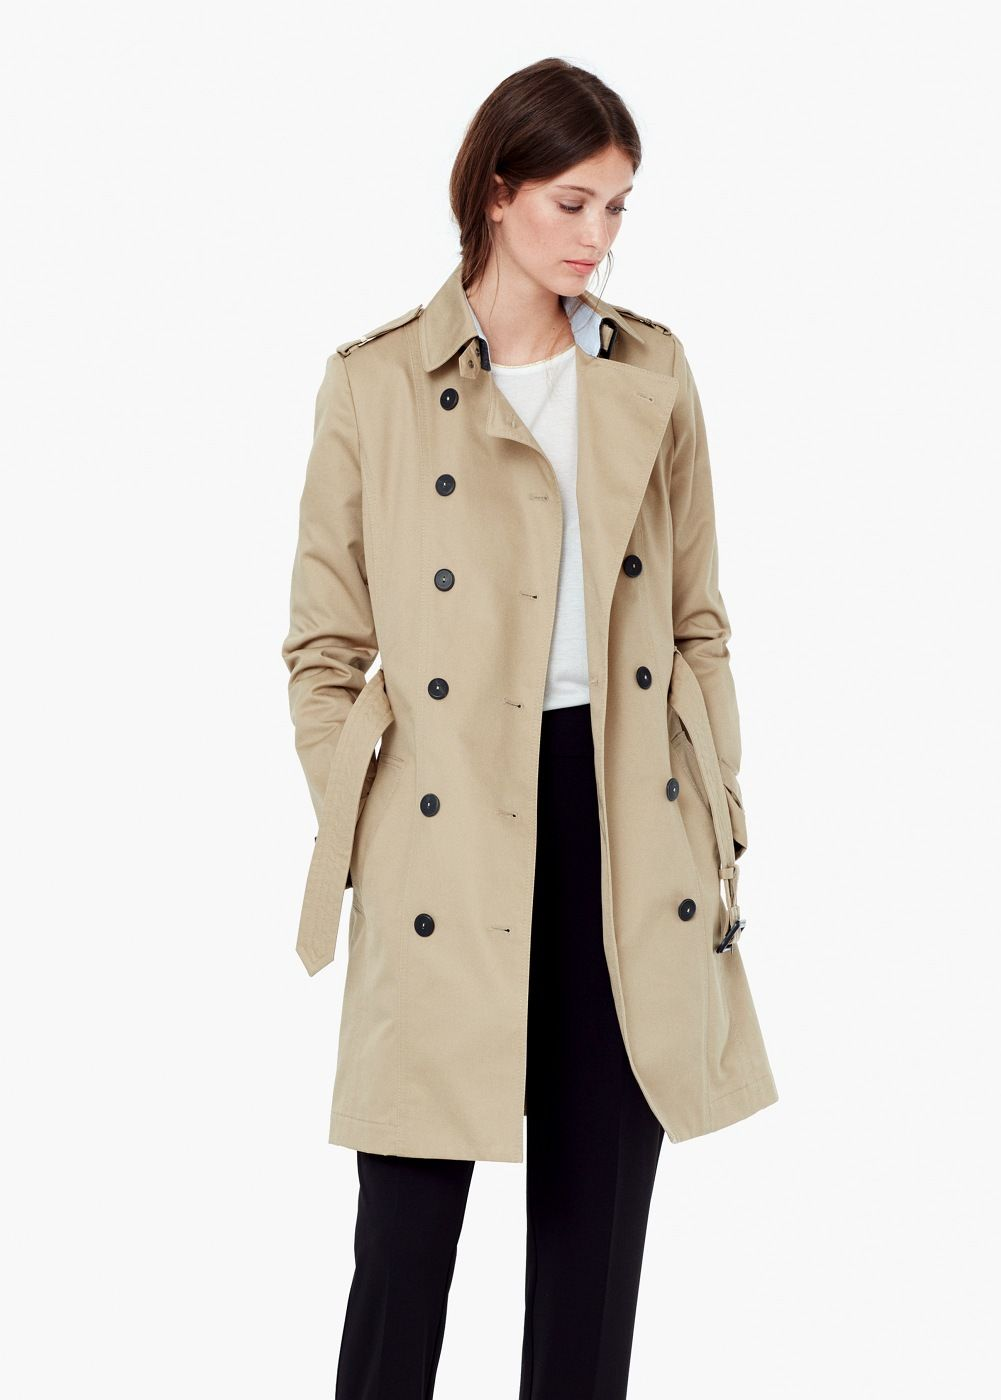 Classic cotton trench coat | Coats, Trench coat women and Trench